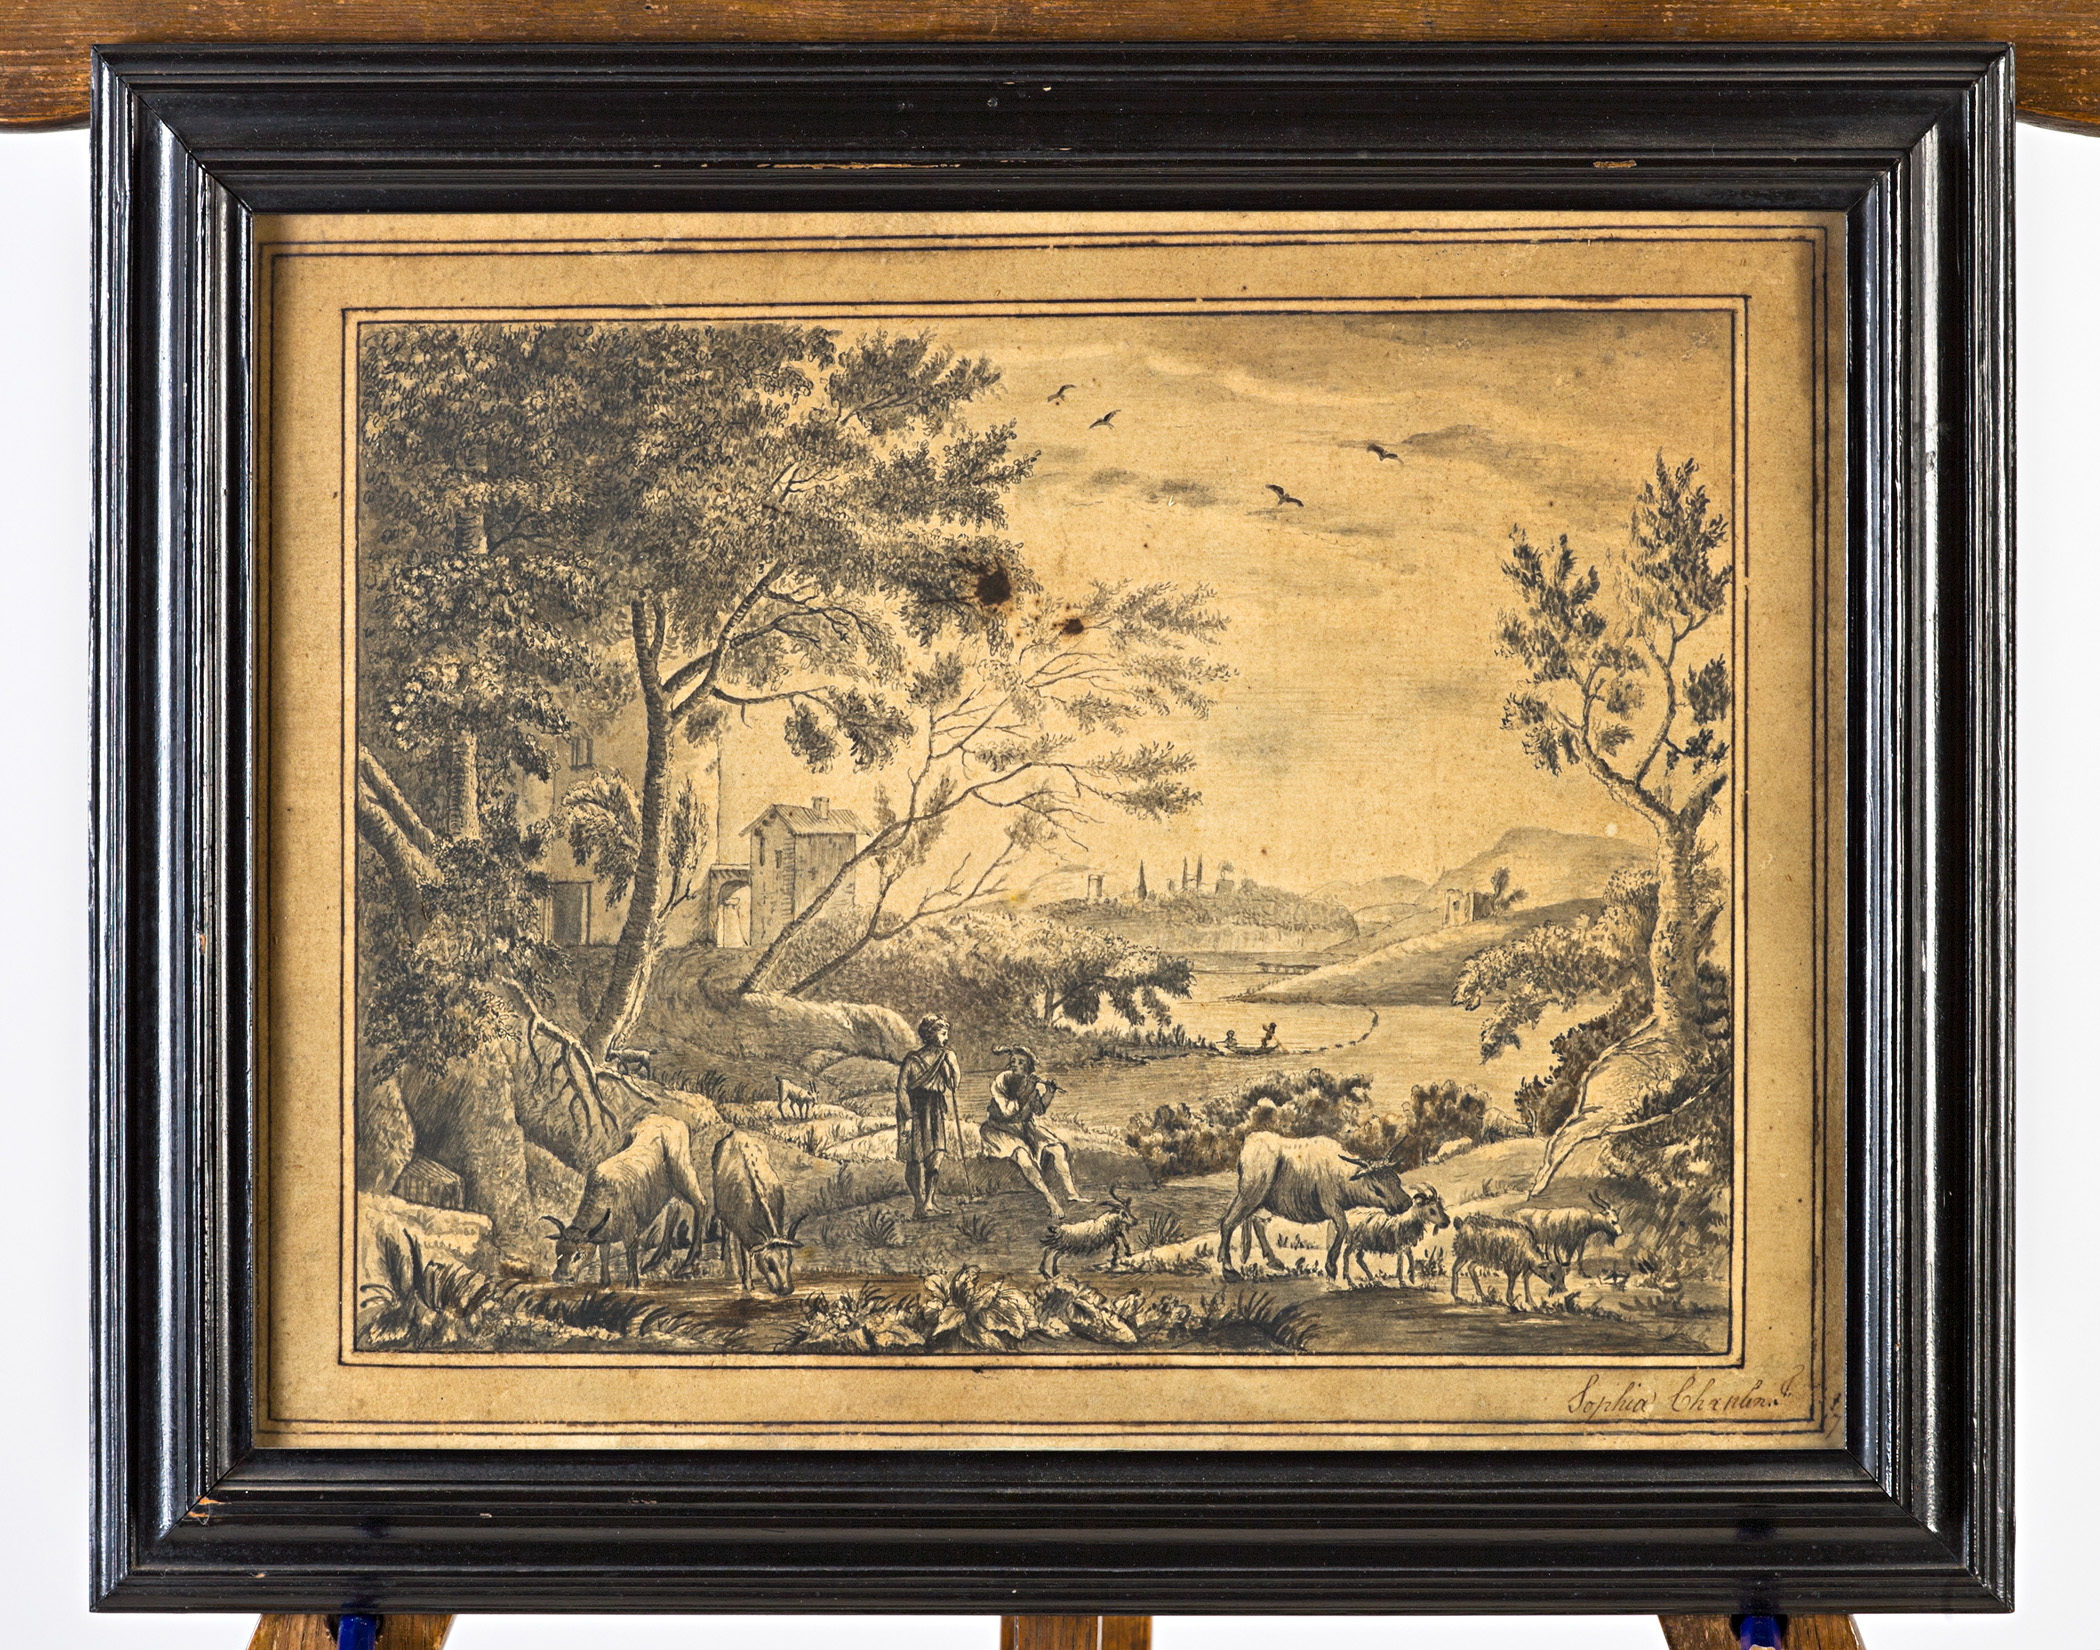 Two Classical landscapes with fishermen, shepherds and animals, by Elizabeth Chaplin & Sophia Chaplin.